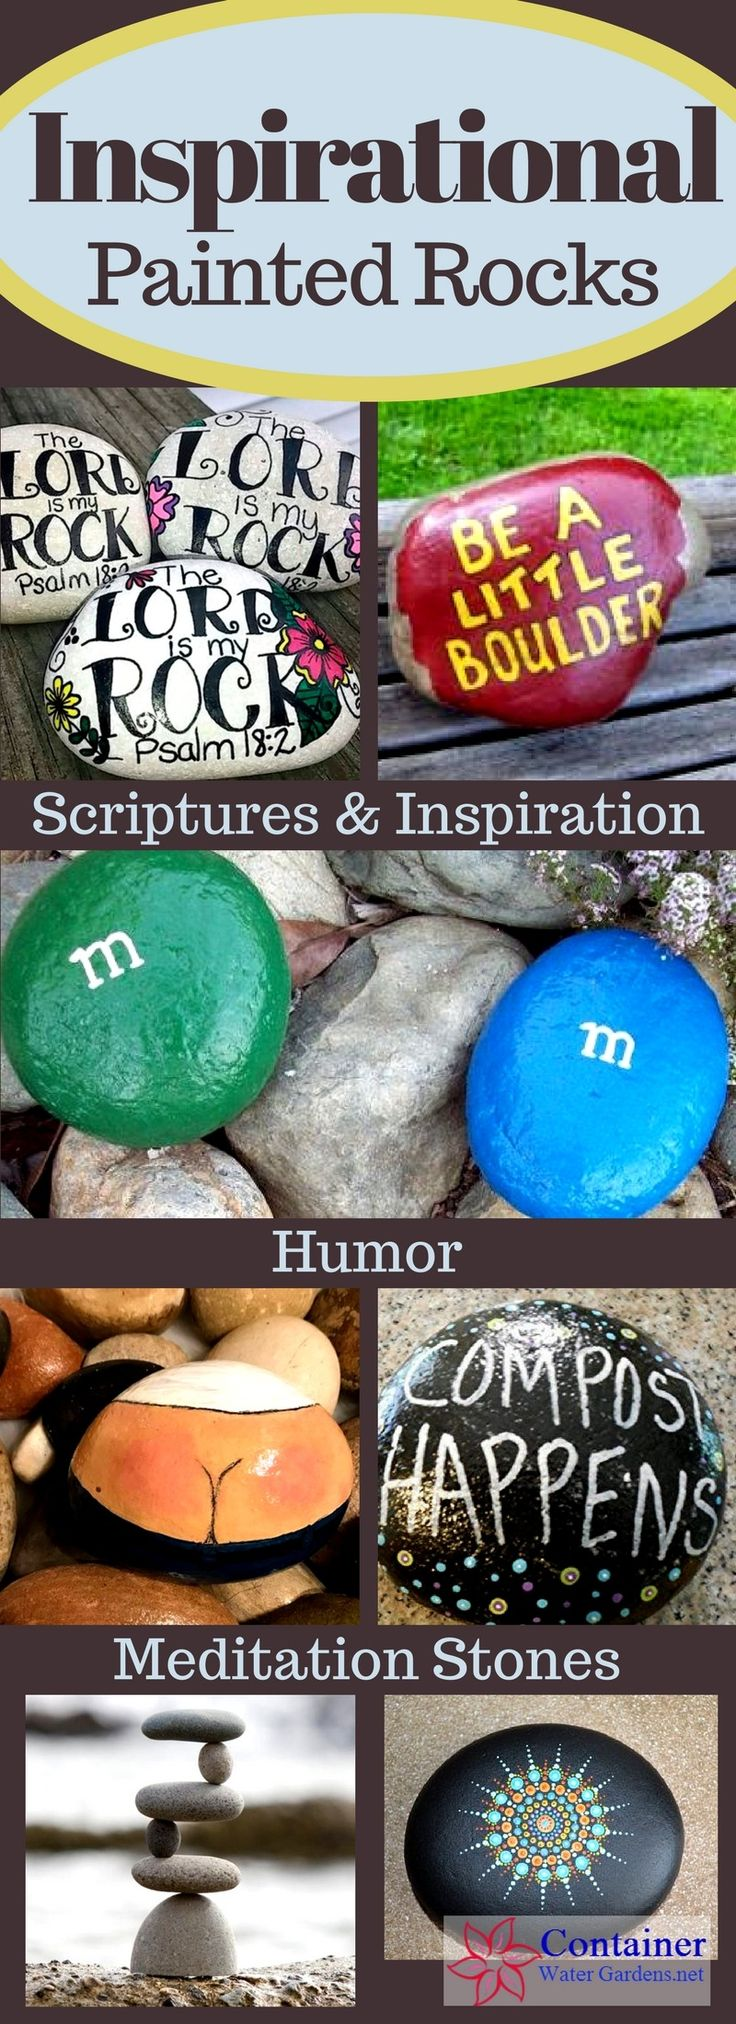 Are you looking for a fun project that adds a touch of whimsy or inspiration to the garden, or maybe just a weekend diversion for the kids? Painted rocks might just be the idea you're looking for. They come in so many variations from funny rocks and cartoon characters to meditative stones and scripture quotes… …